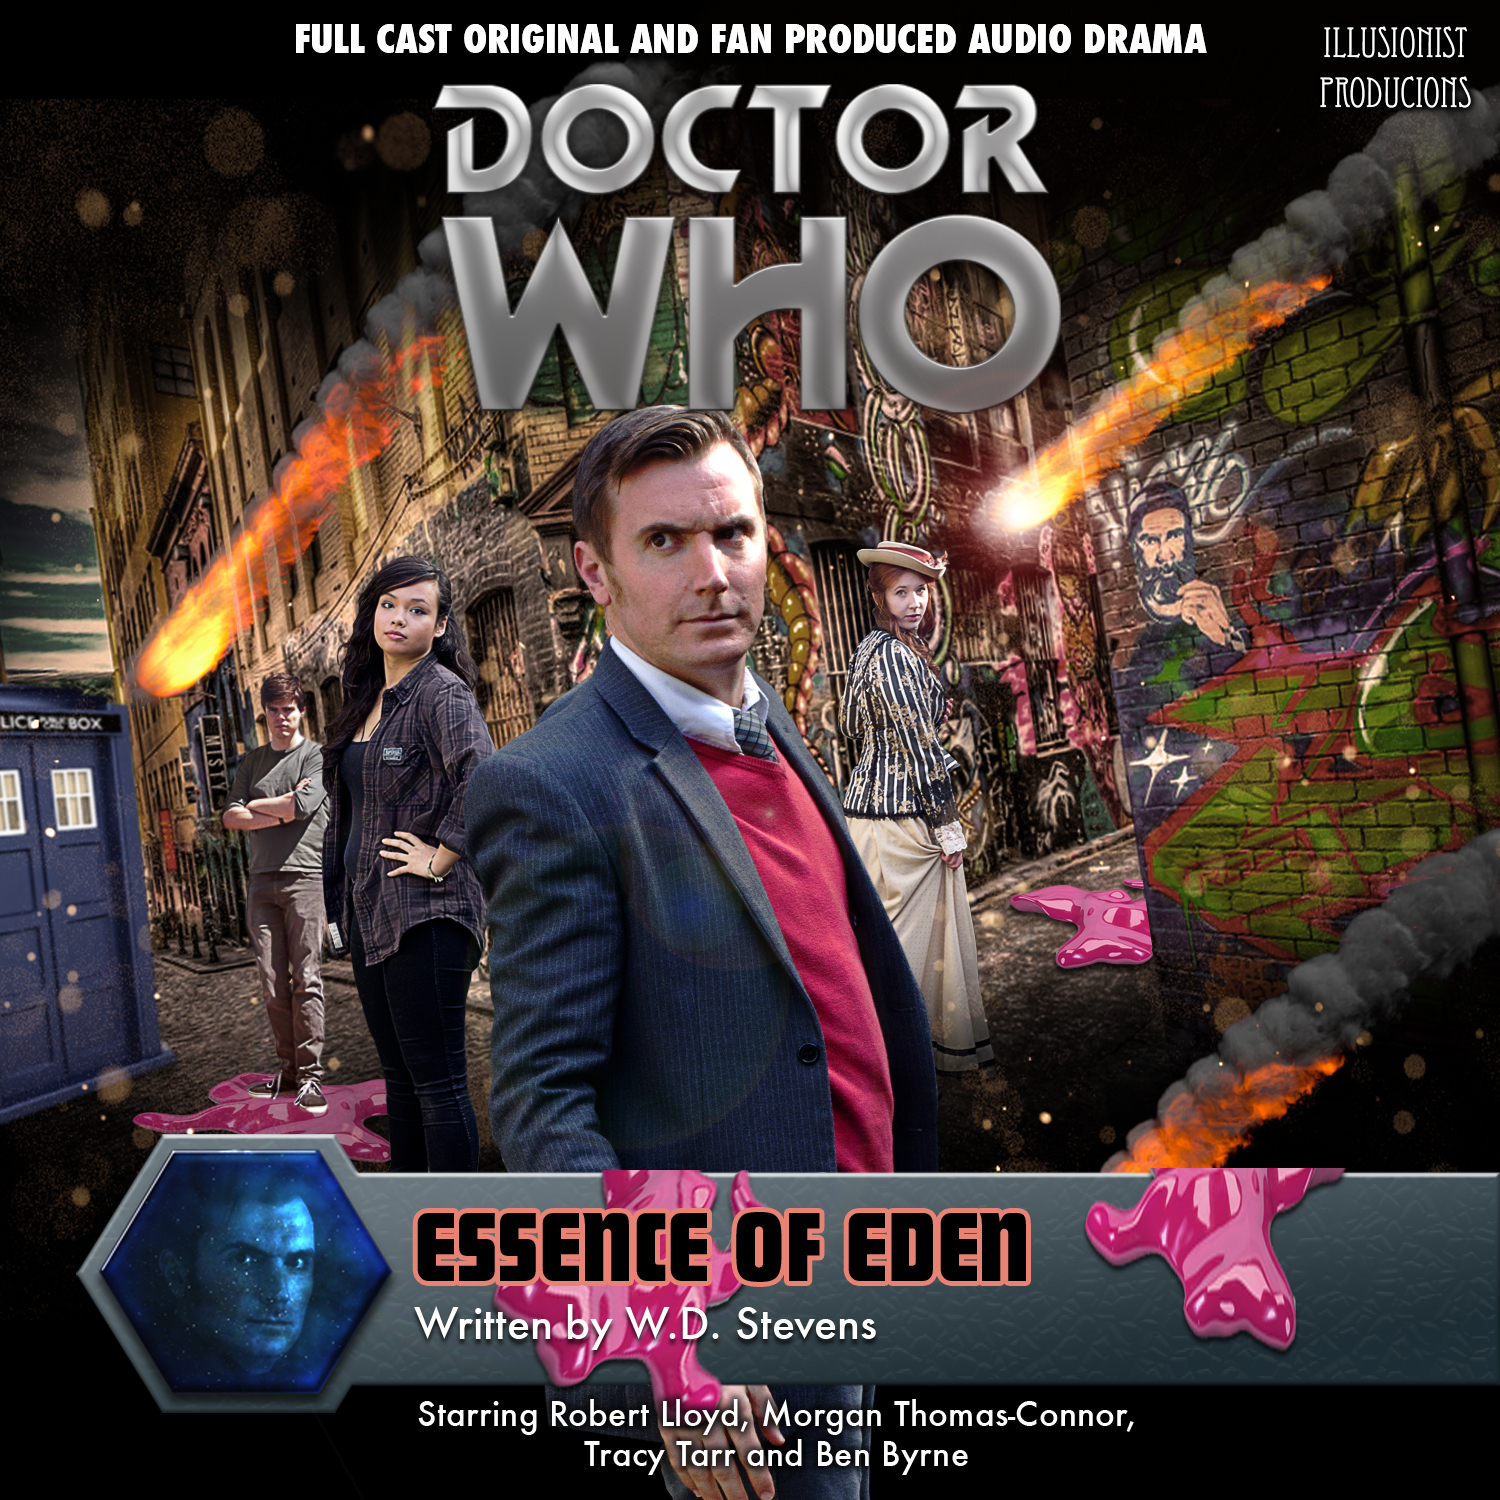 The Aussie Doctor - Doctor Who - Robert Lloyd Doctor - ALL current material - W.D. Stevens